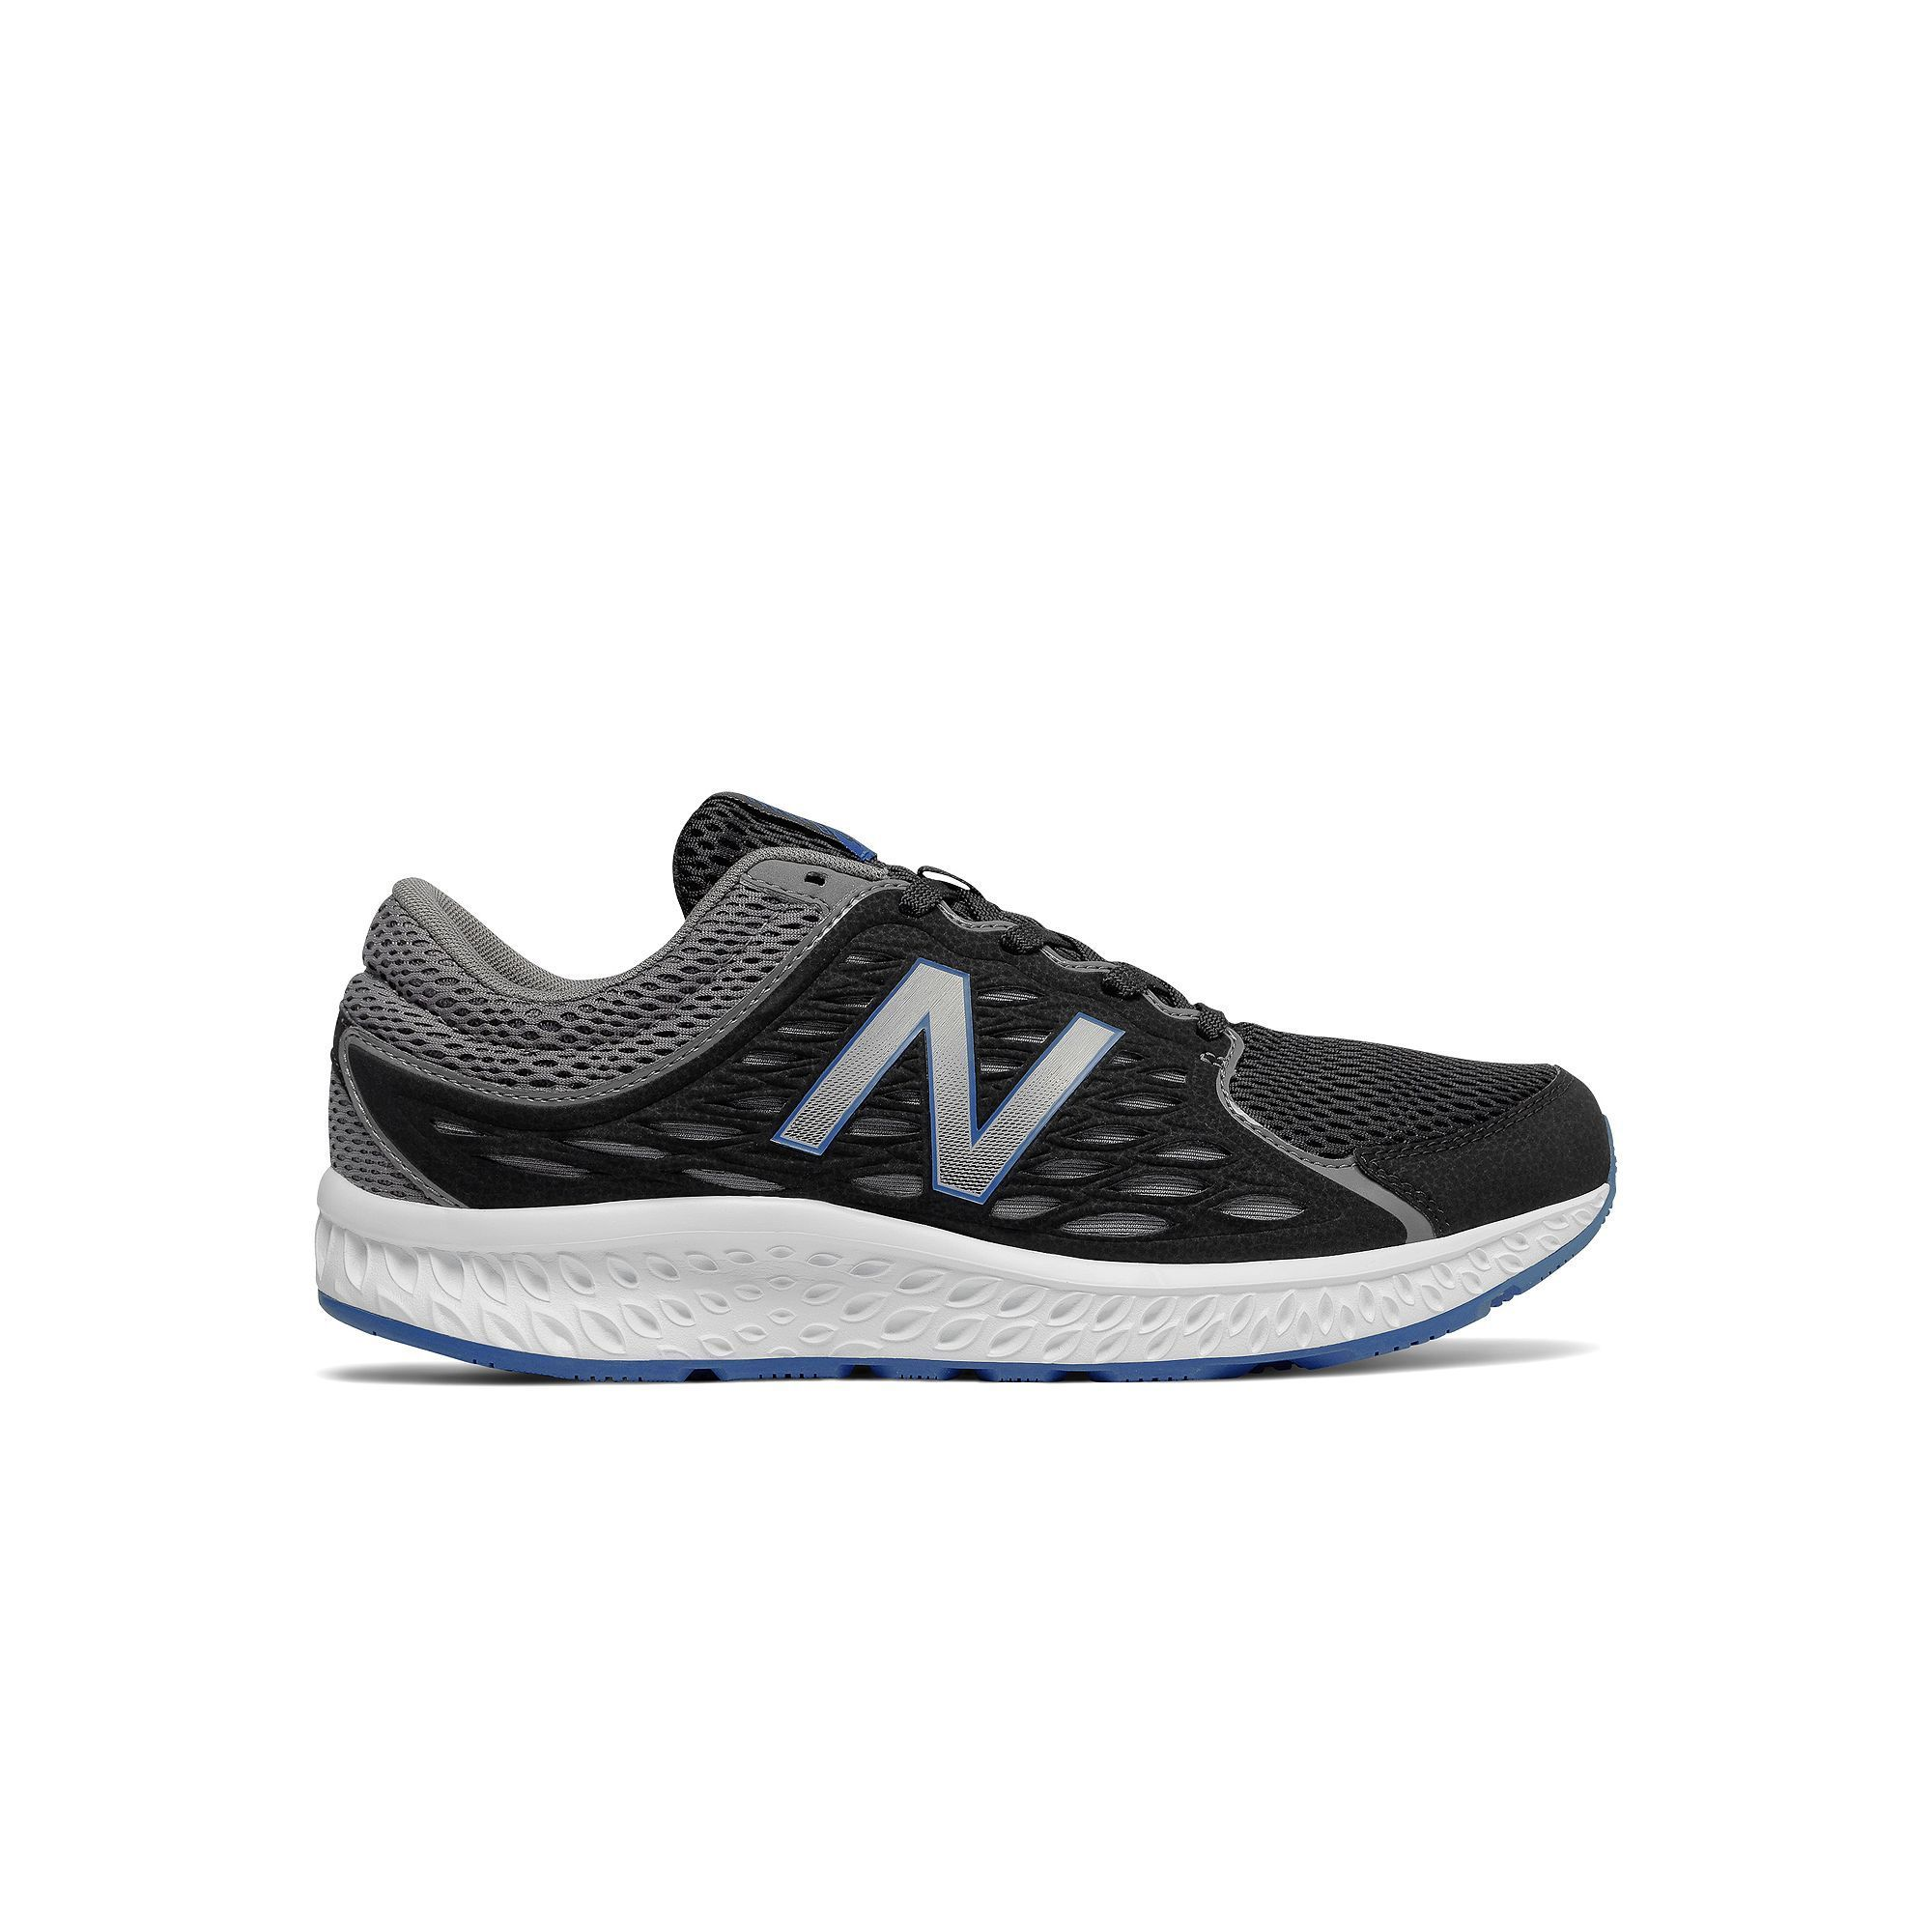 4e5632769f44f New Balance 420 v3 Men's Running Shoes, Size: 10.5 Wide, Oxford, Durable